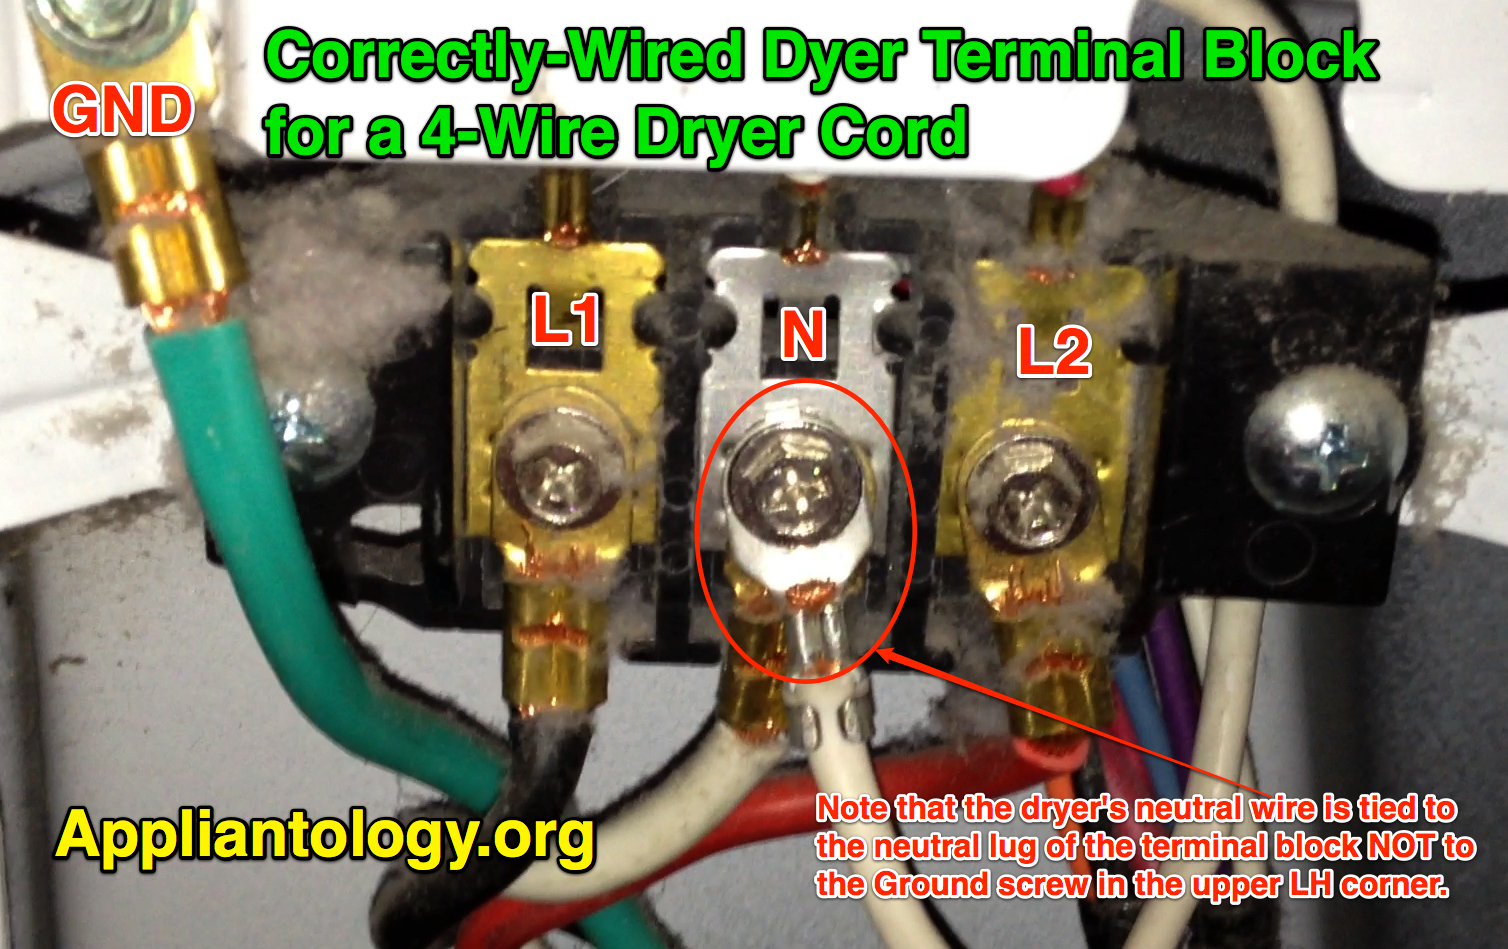 gallery_4_8_634461 correctly wired dyer terminal block for a 4 wire dryer cord the dryer cord wiring diagram at n-0.co